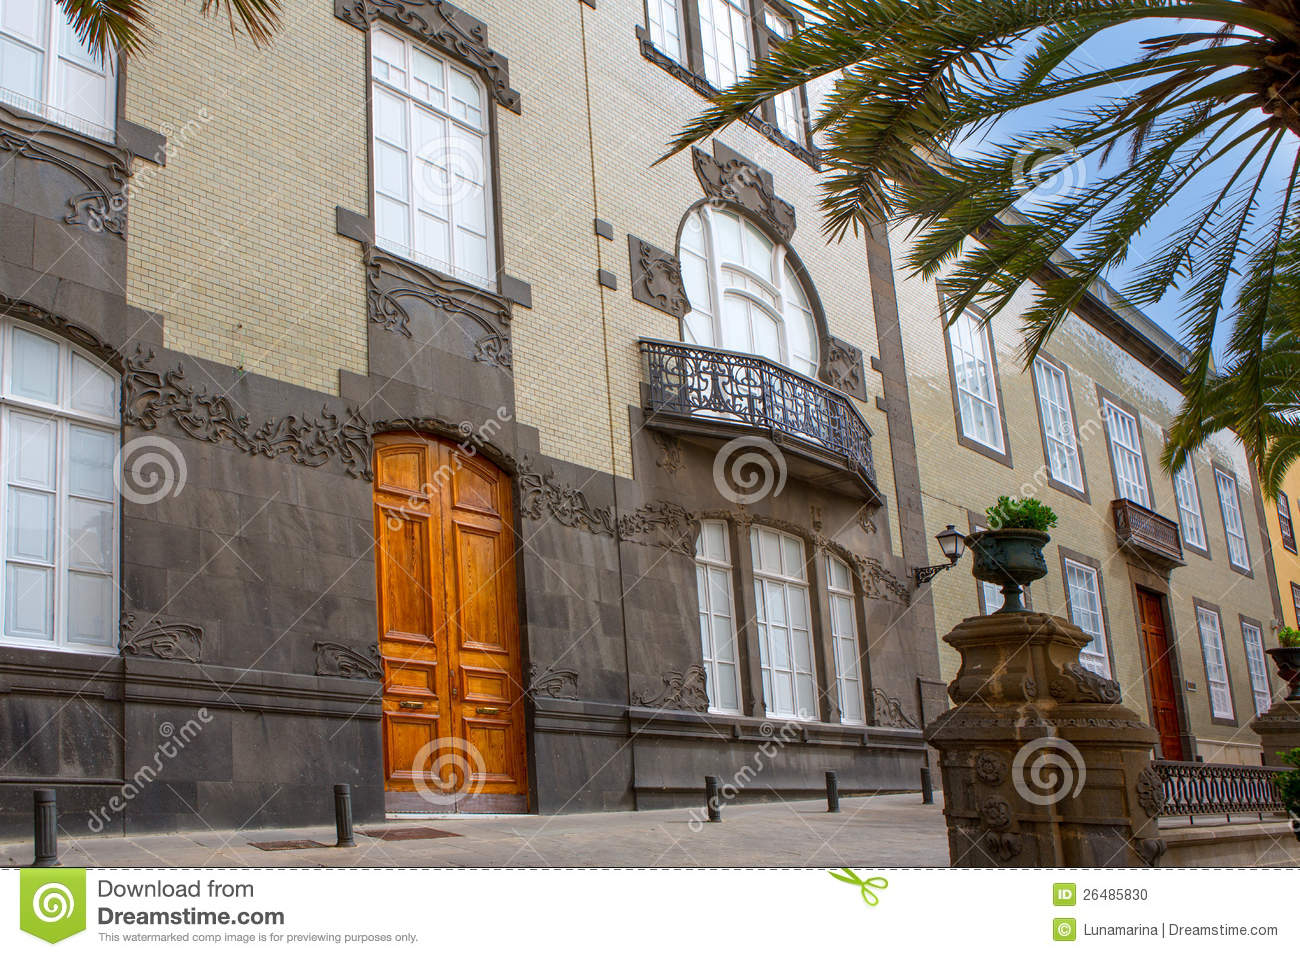 Las palmas de gran canaria veguetal houses stock photo - Houses in gran canaria ...